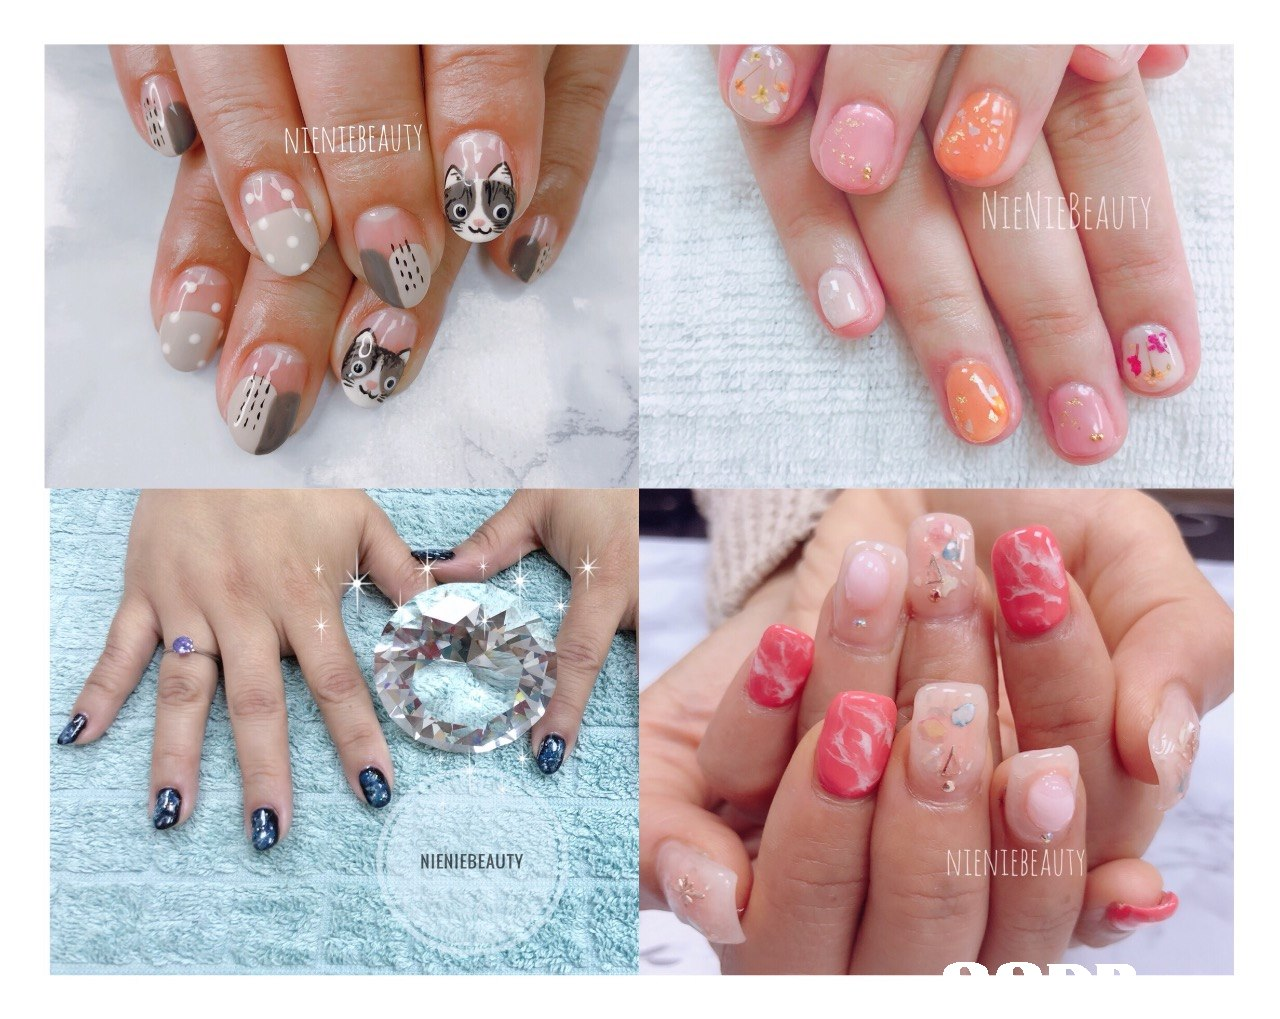 NIENTEBEAUTY NIENIEBEAUTY NIENIEBEAUT  Nail,Manicure,Finger,Nail care,Cosmetics